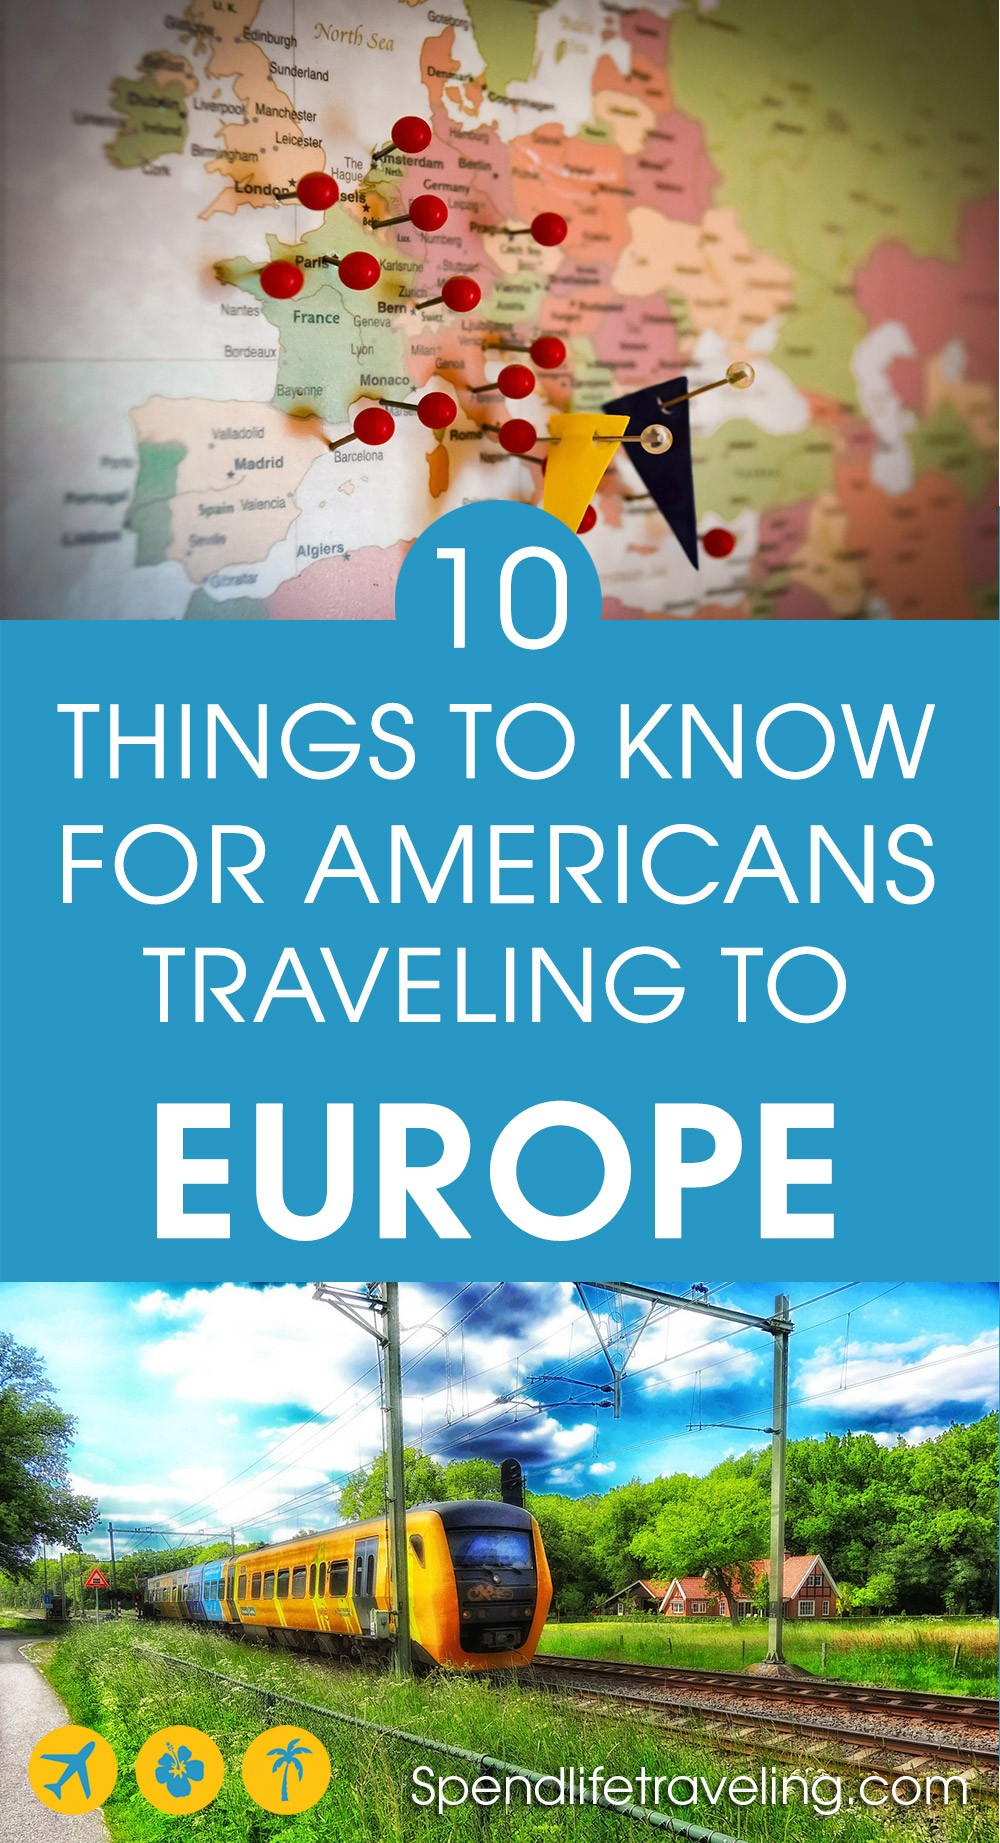 Are you planning to travel to #Europe? These are 10 useful things to know about Europe before taking your first trip. #traveltips #travelEurope #visitEurope #travelingabroad